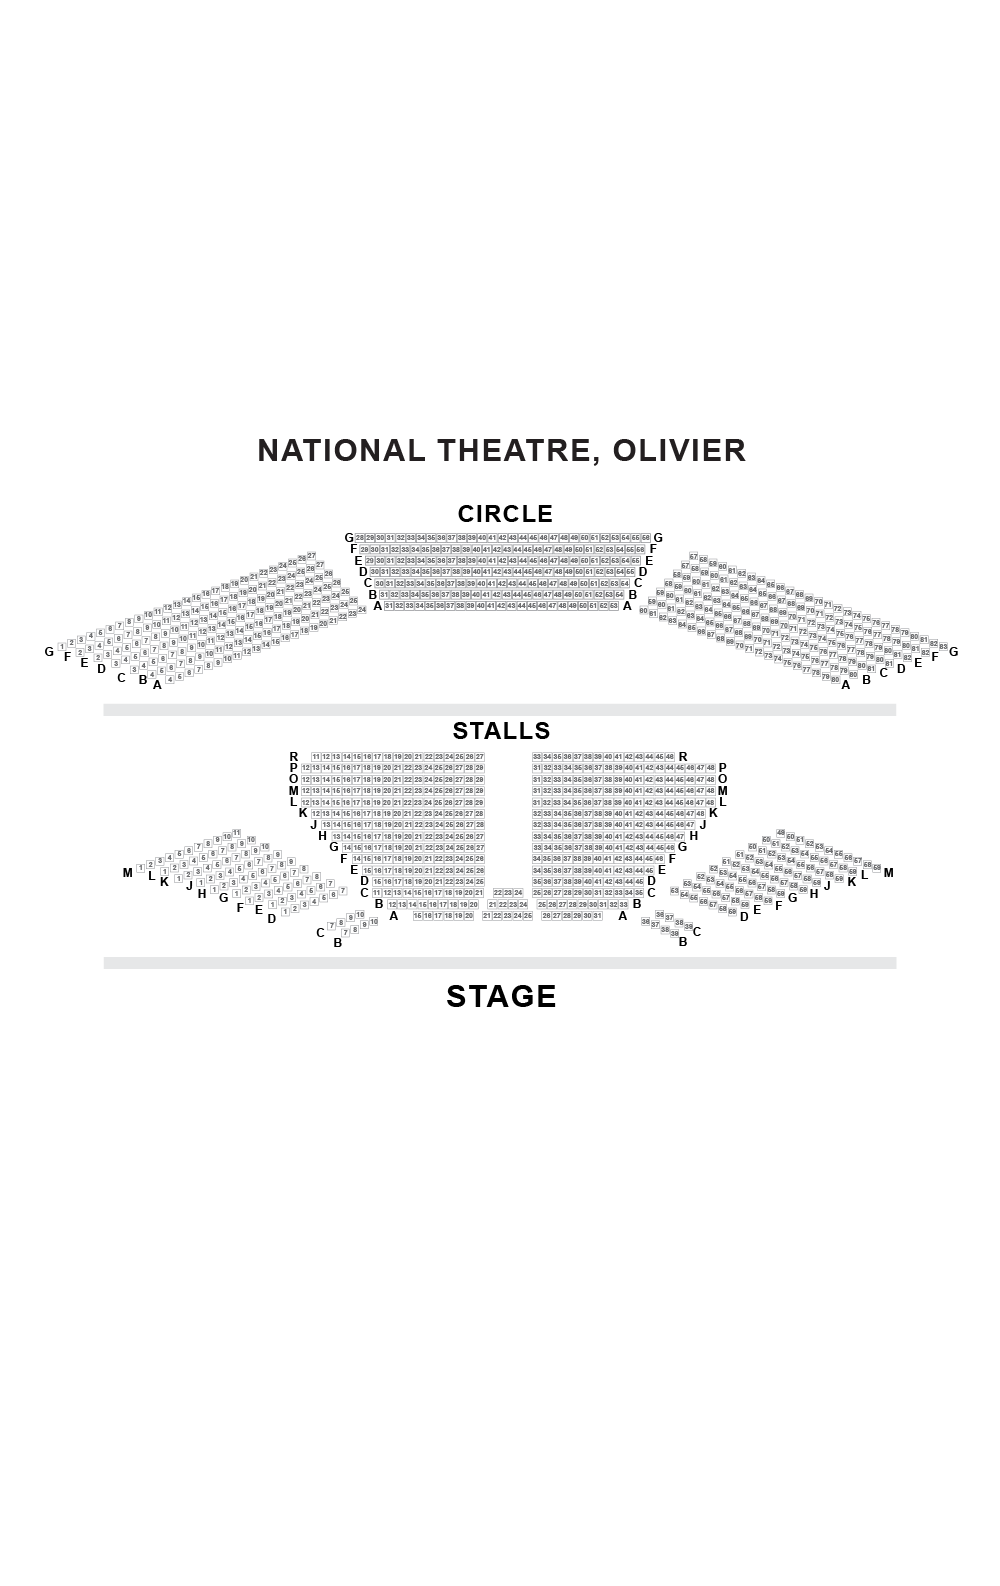 Olivier Theatre, National Seating Plan